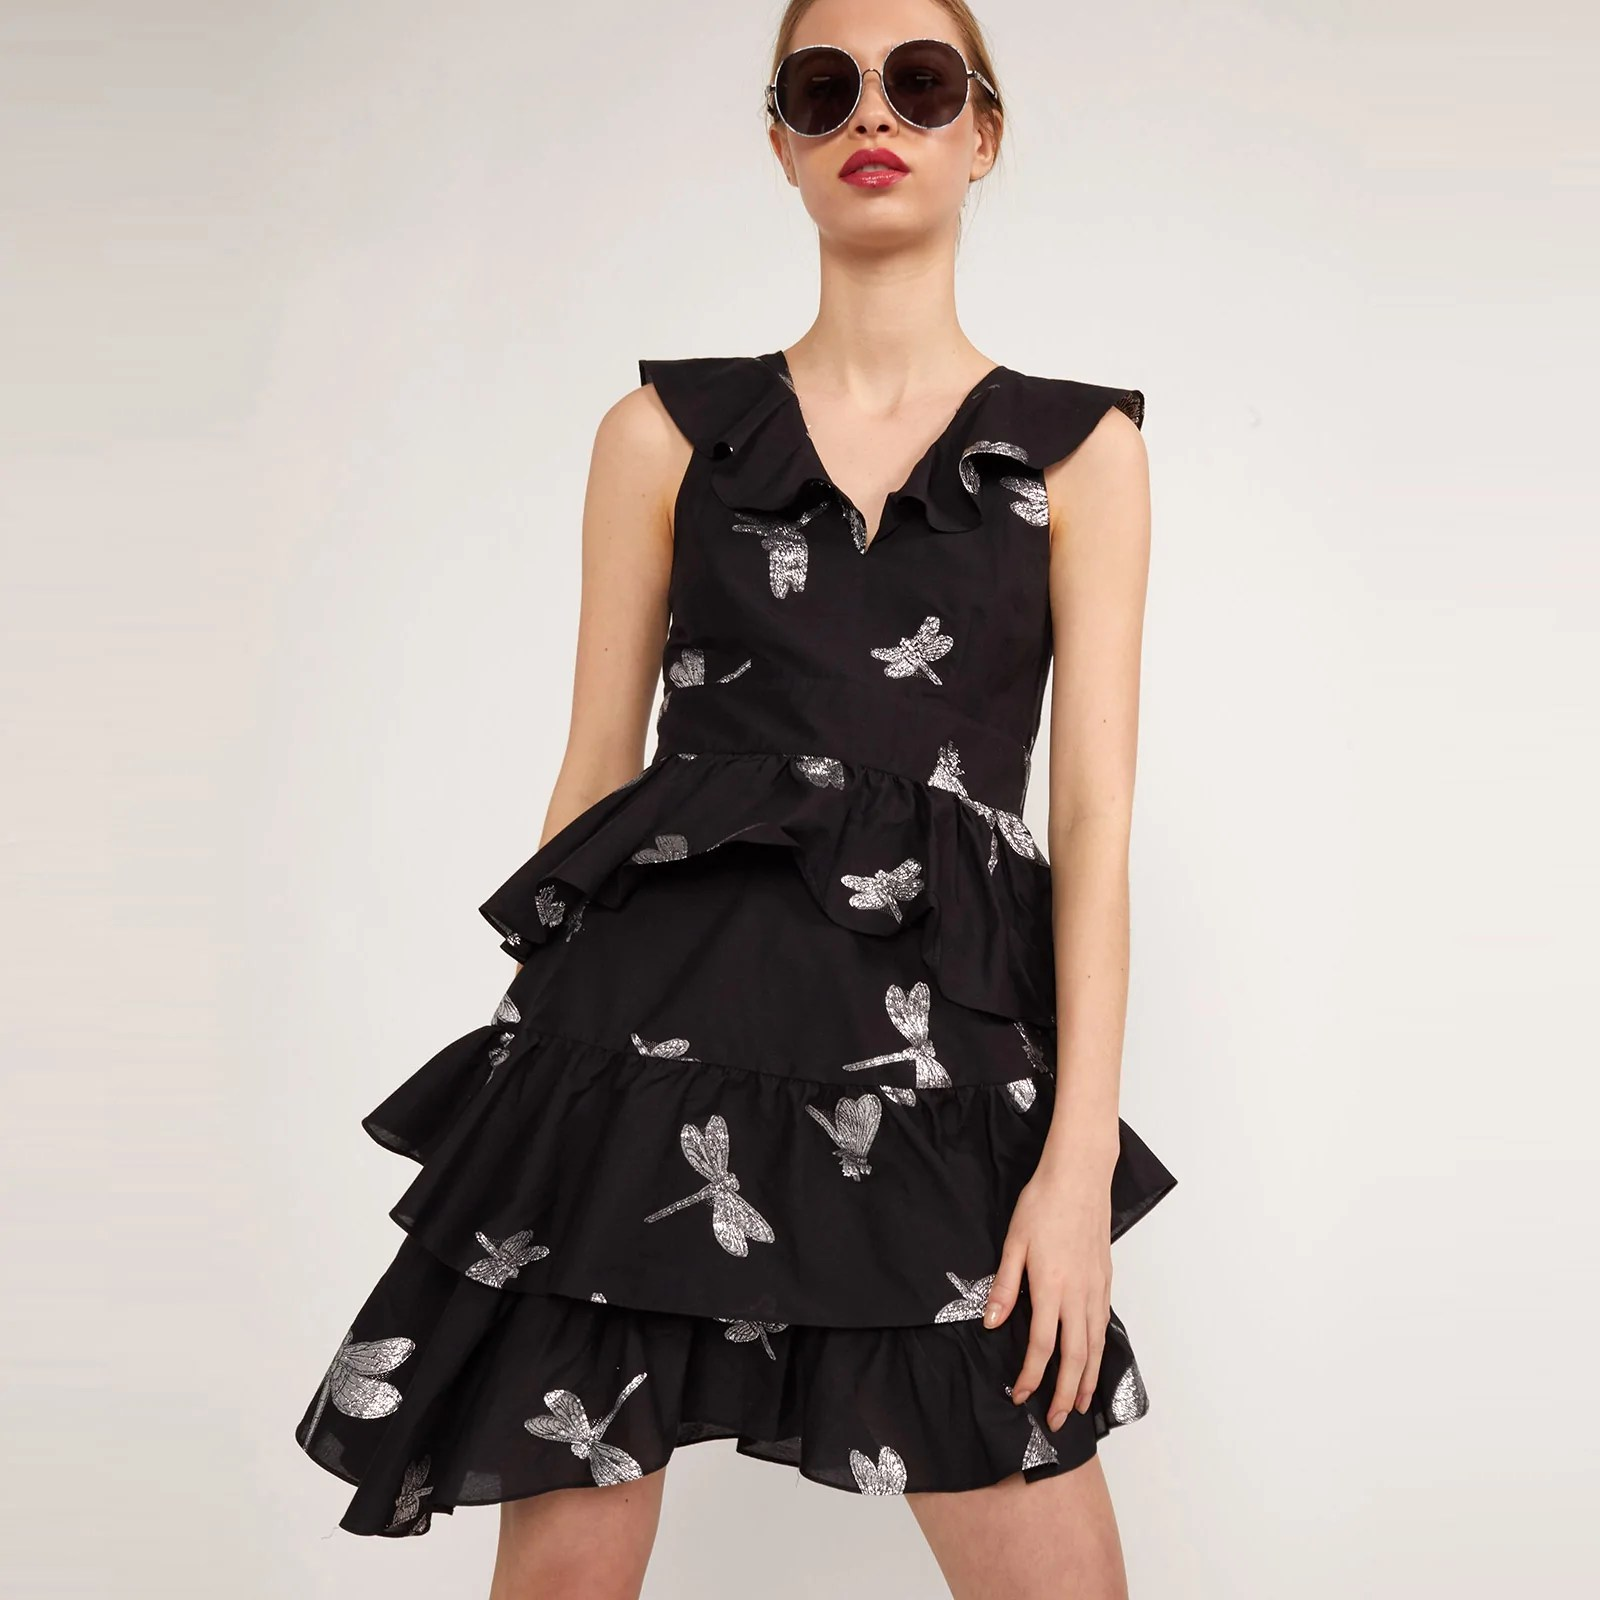 Handtücher Sale Cynthia Rowley The Official Cynthia Rowley Online Shop